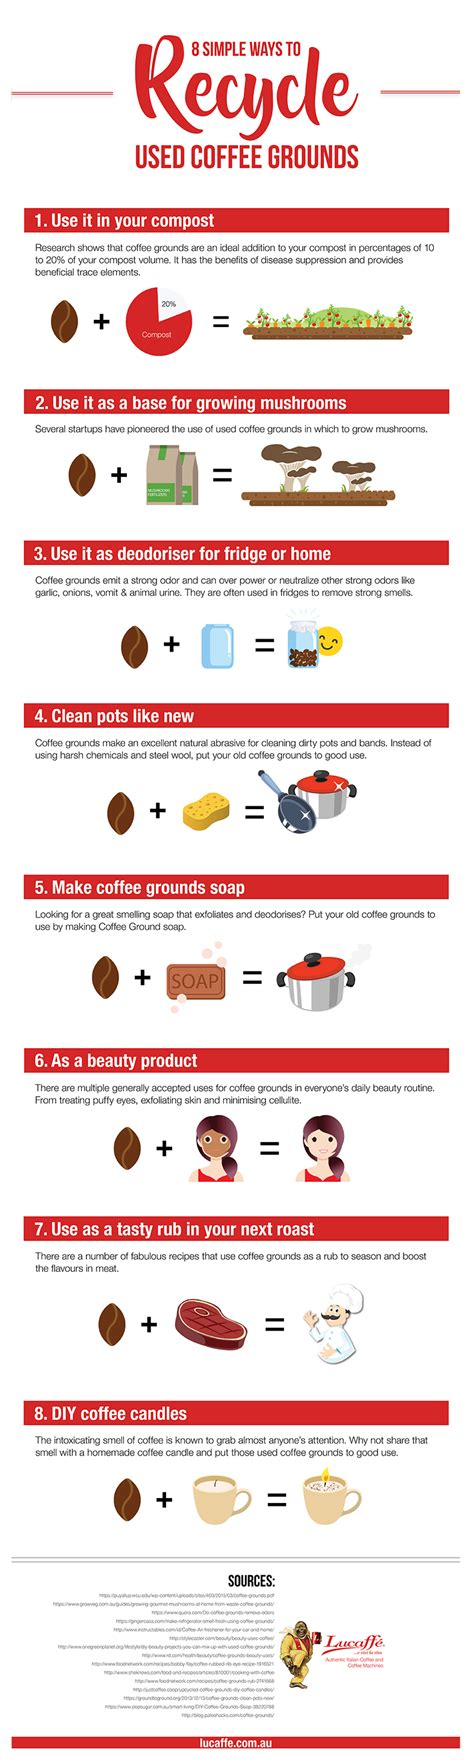 Formality of aluminum for the precise drum reduces the aura of fine ground coffee powder and hence, make a mark for steel made ones. 8 Simple Ways to Recycle Used Coffee Grounds - InfographicBee.com